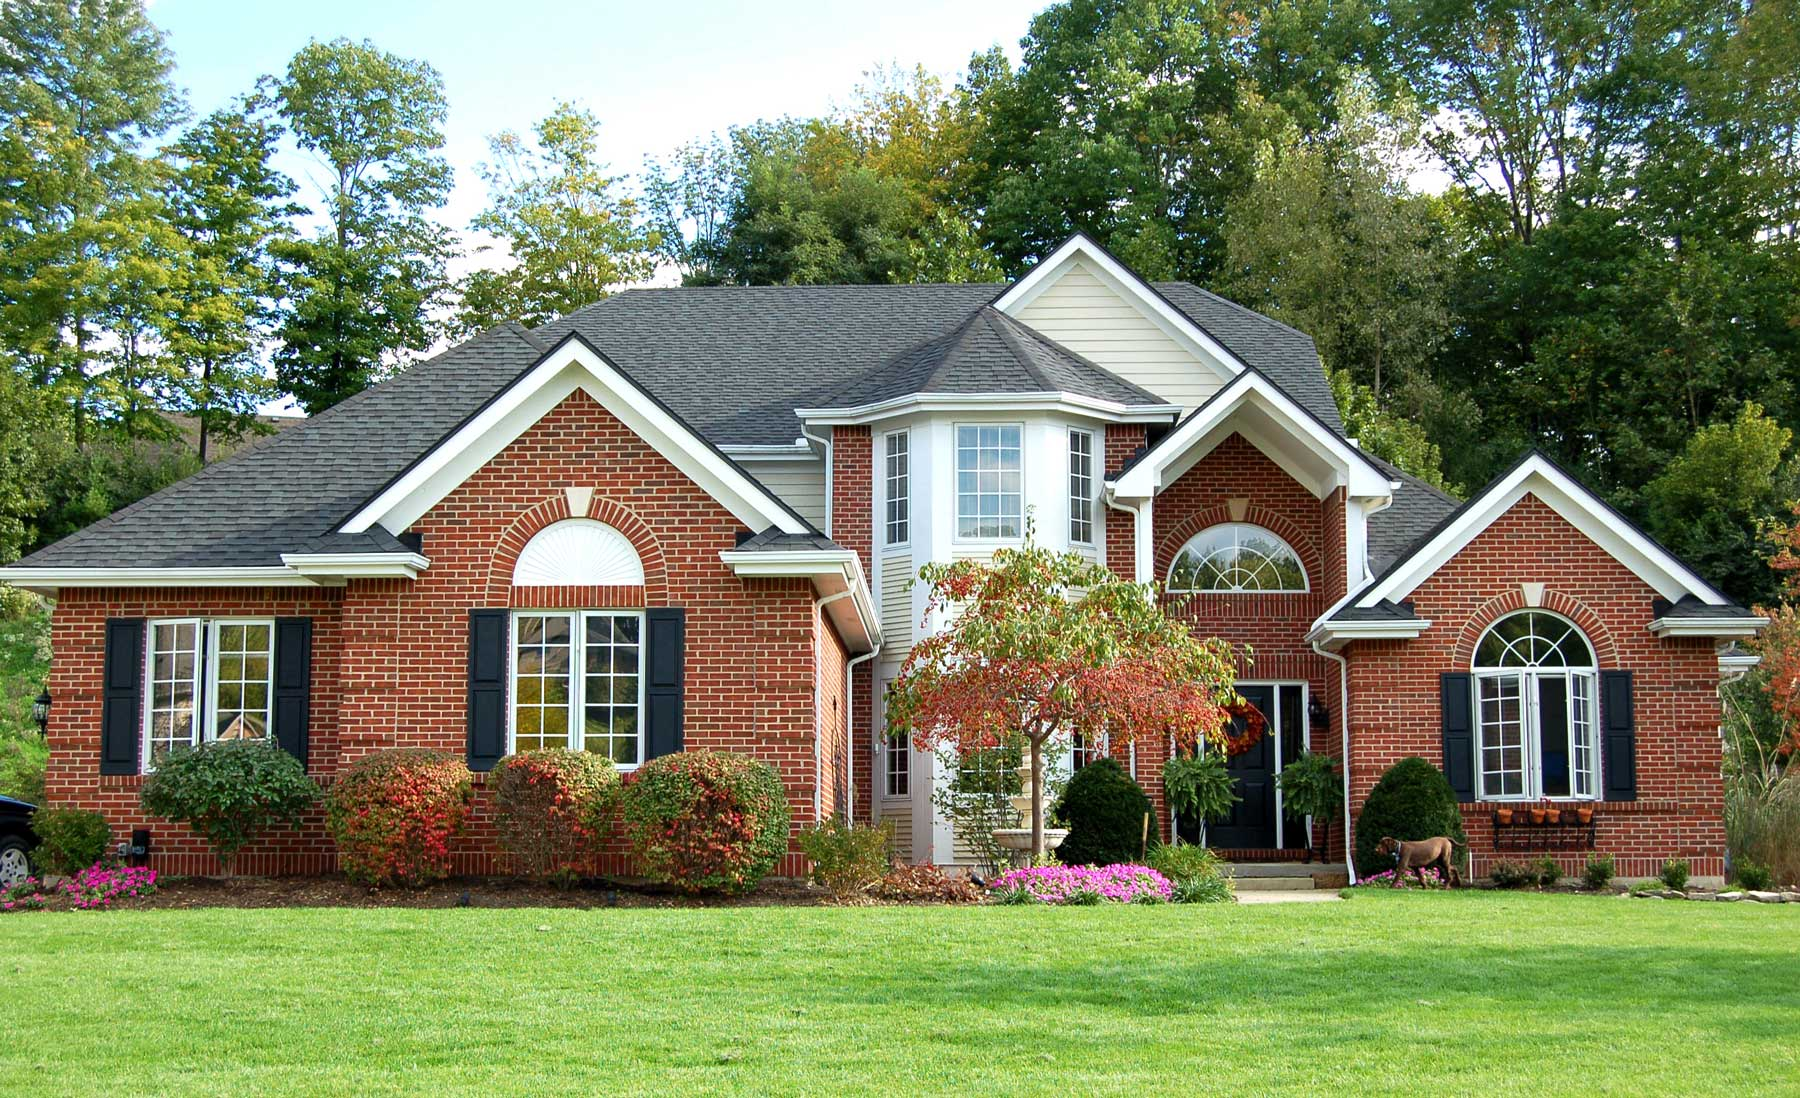 Wondrous Gahanna Real Estate Gahanna Oh Homes For Sale Re Max Interior Design Ideas Gentotryabchikinfo